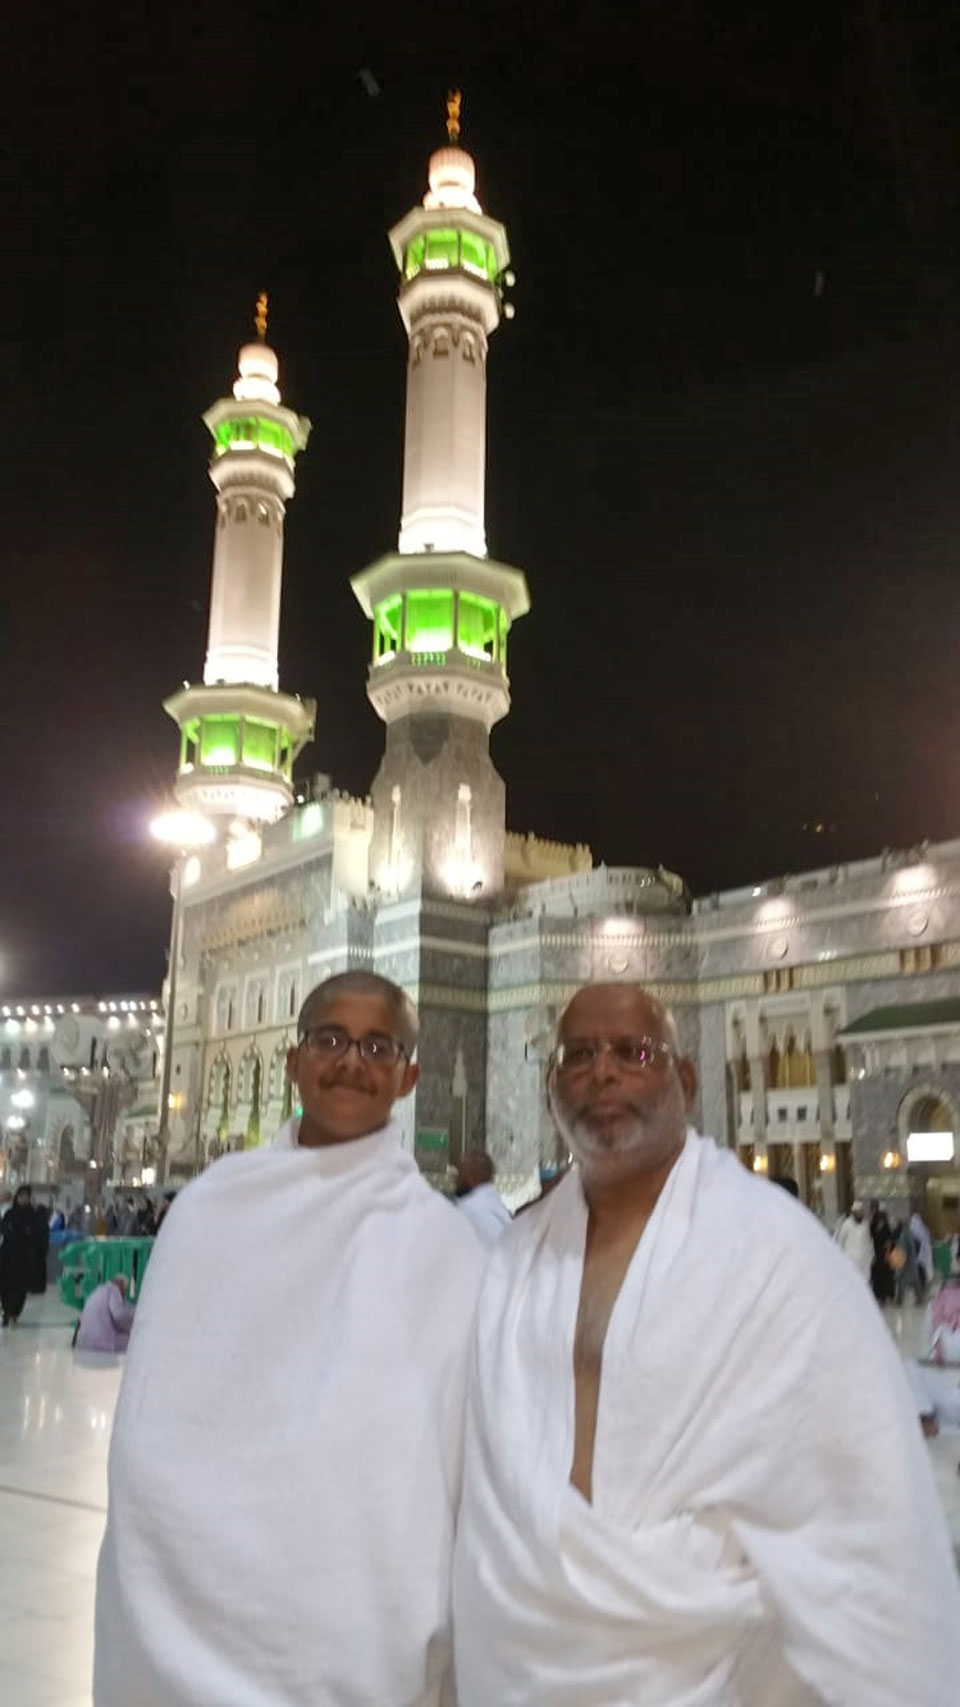 Dr Ata Ur Rehman and Habib Ur Rehman after completing their Taw'aaf